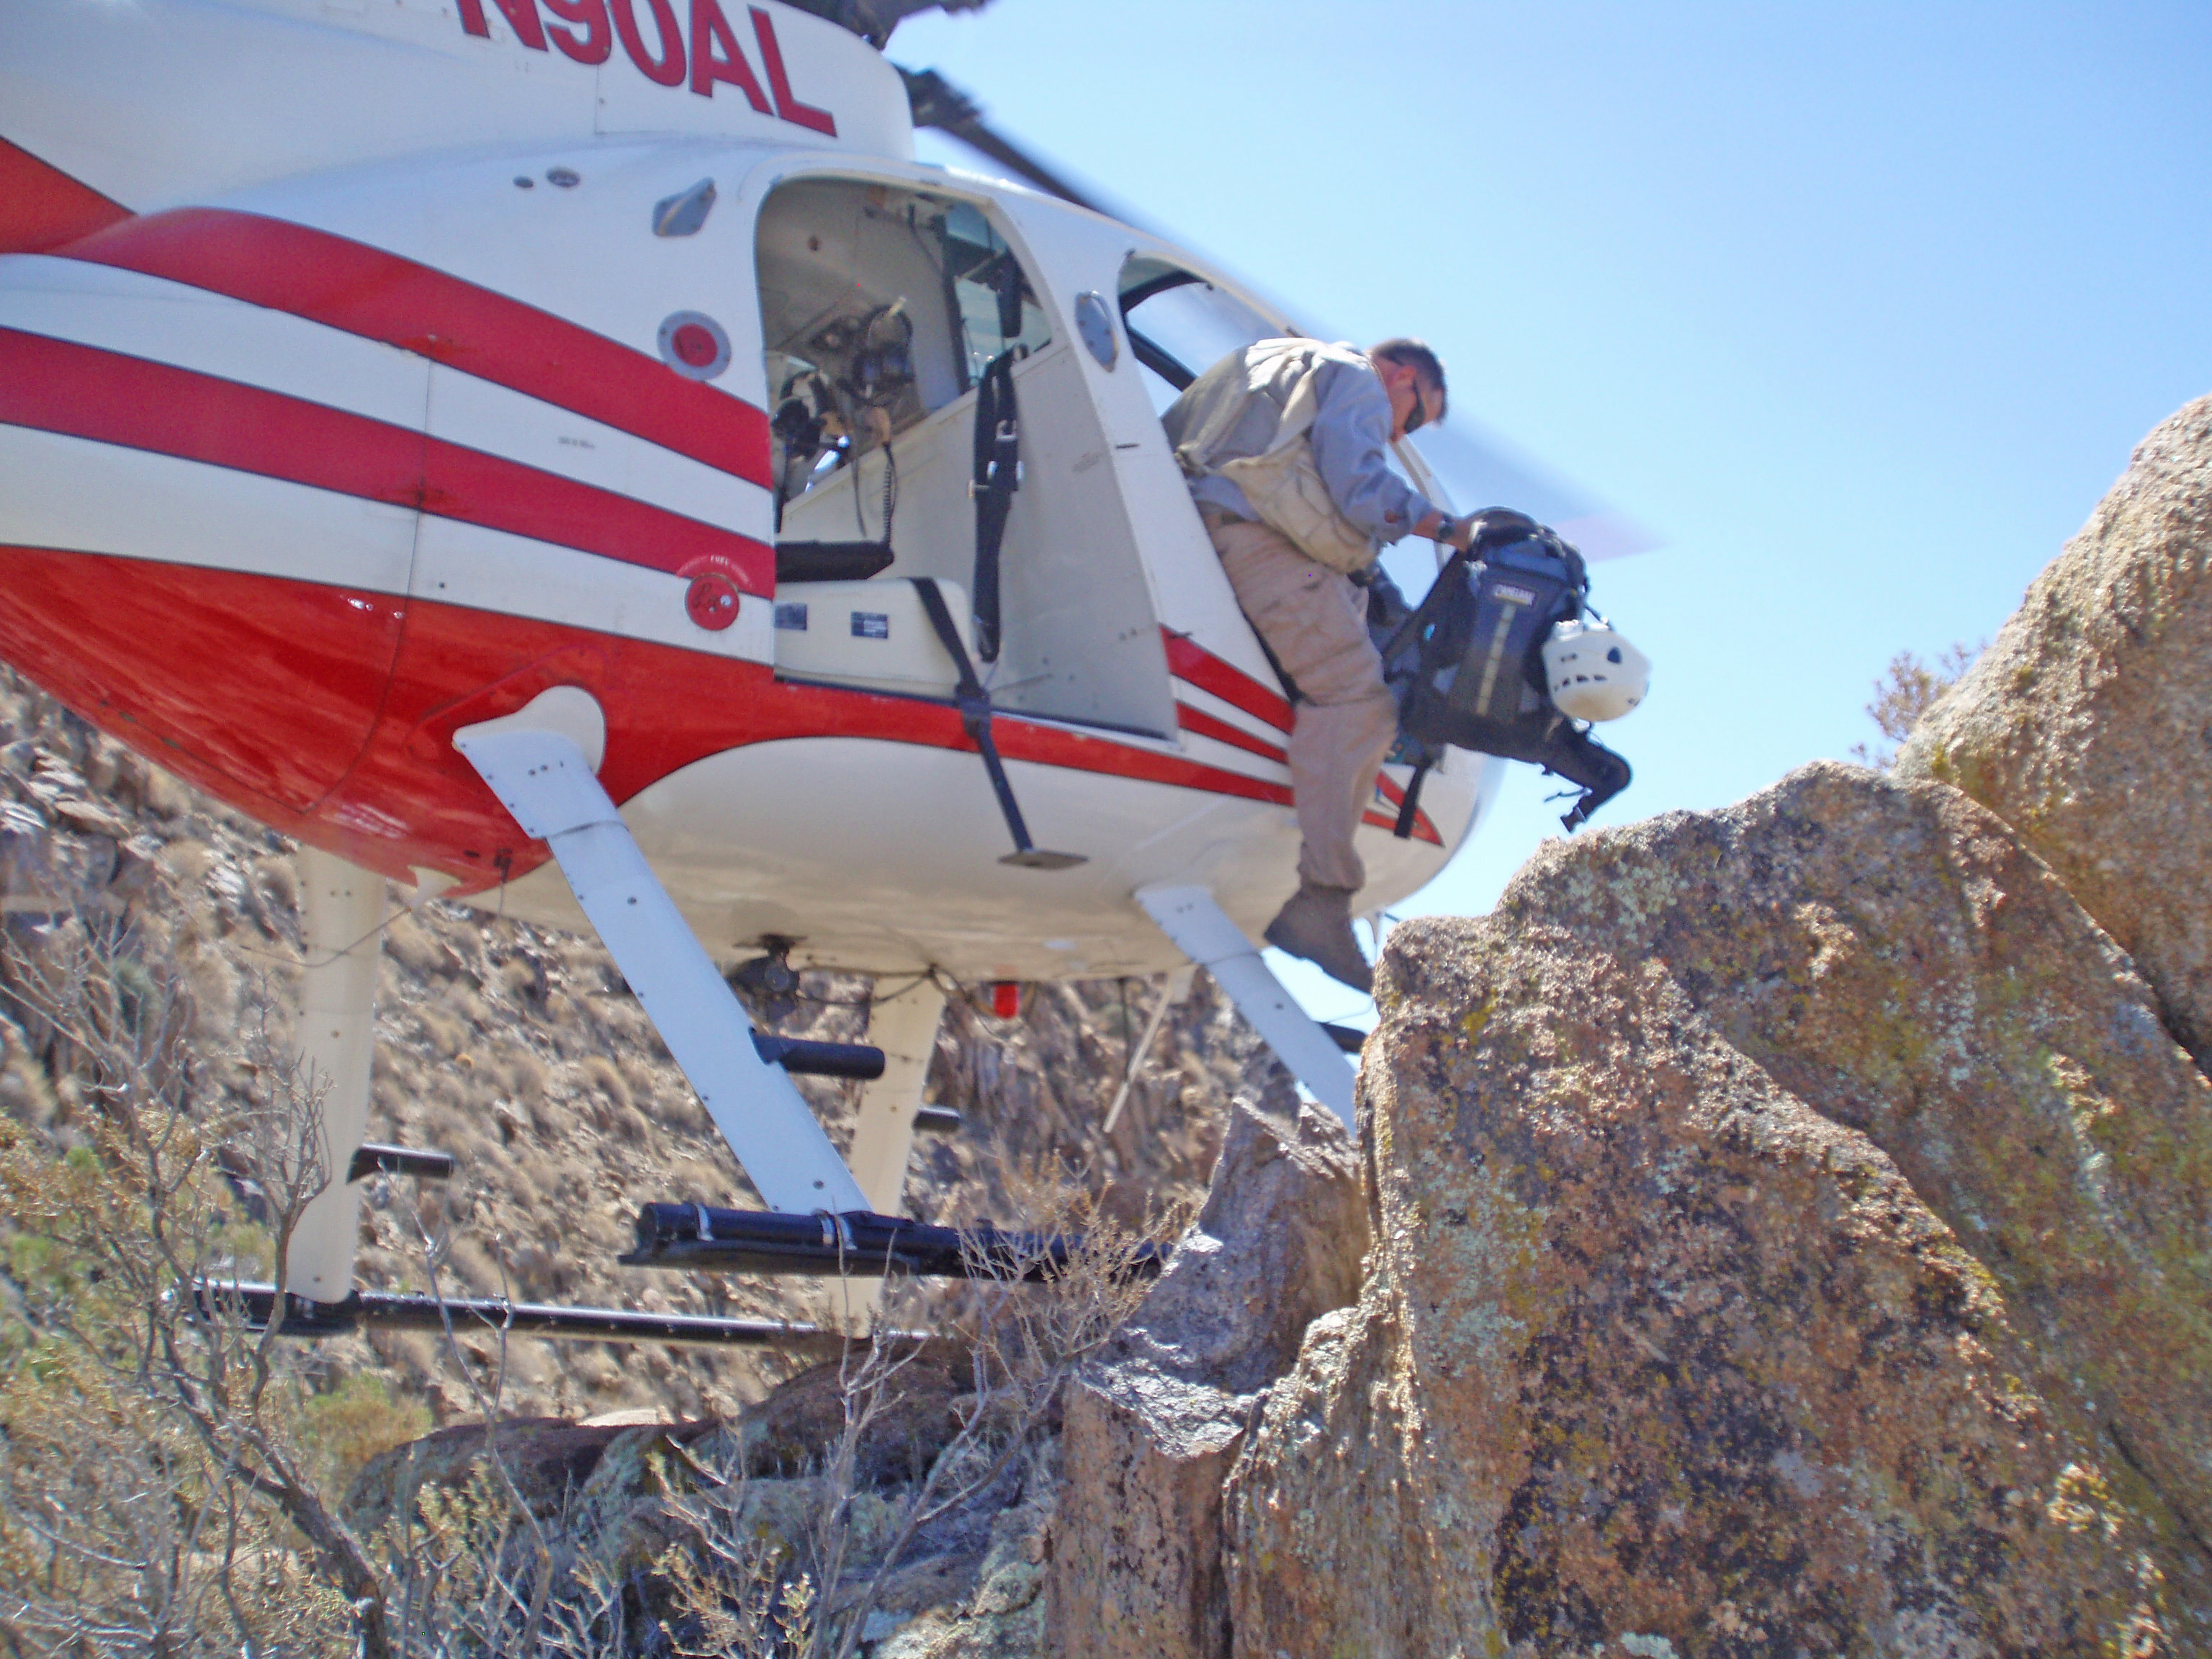 GE Banding, Moreno Butte, Jeff Wells departing Helo, 2007